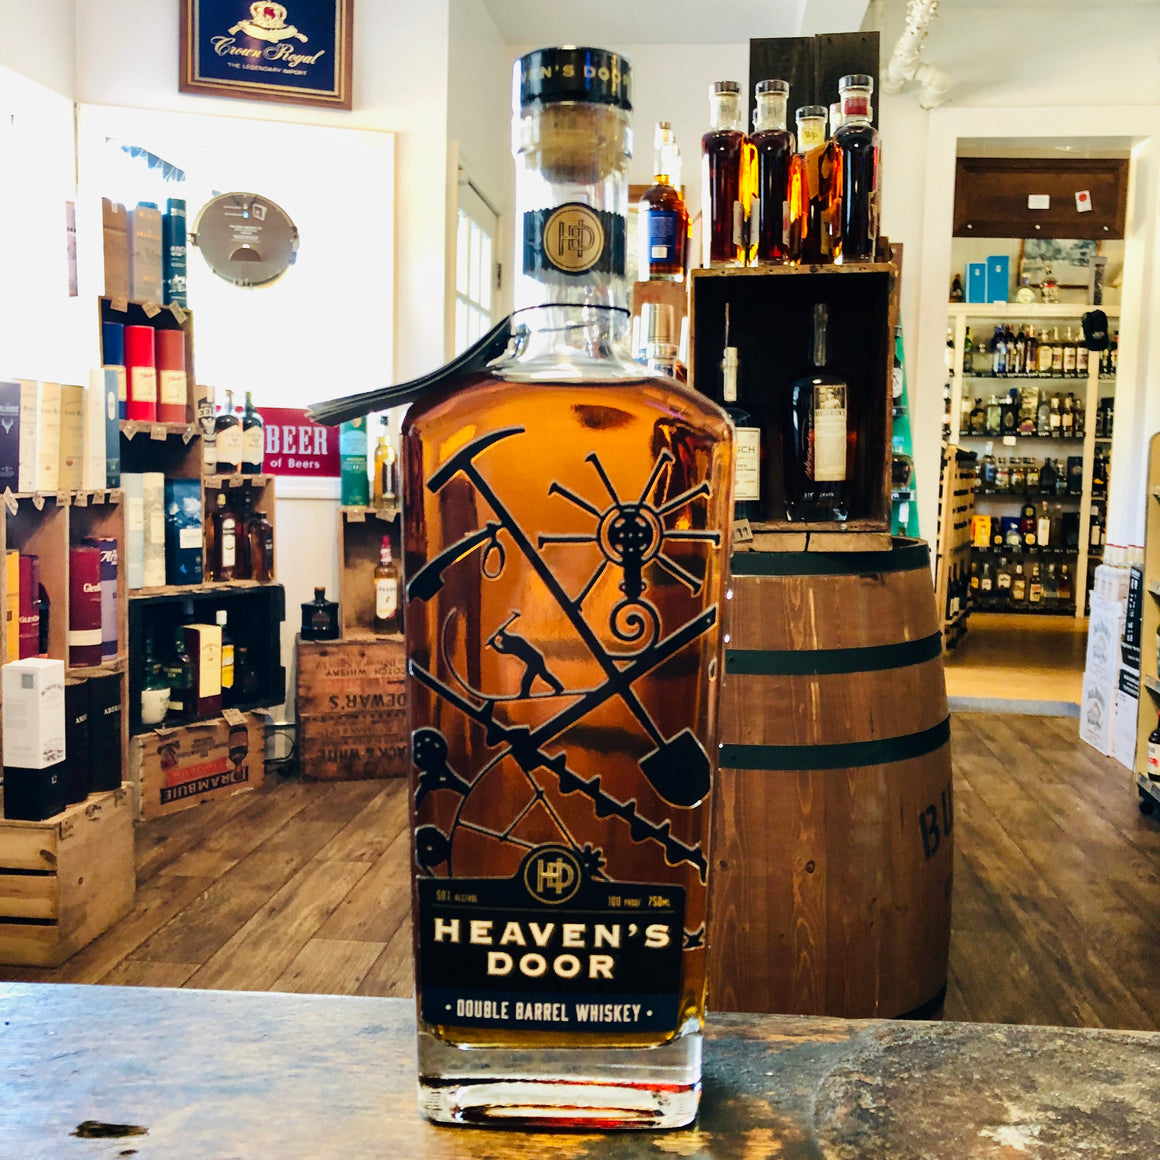 HEAVEN'S DOOR DOUBLE BARREL WHISKEY 750ML